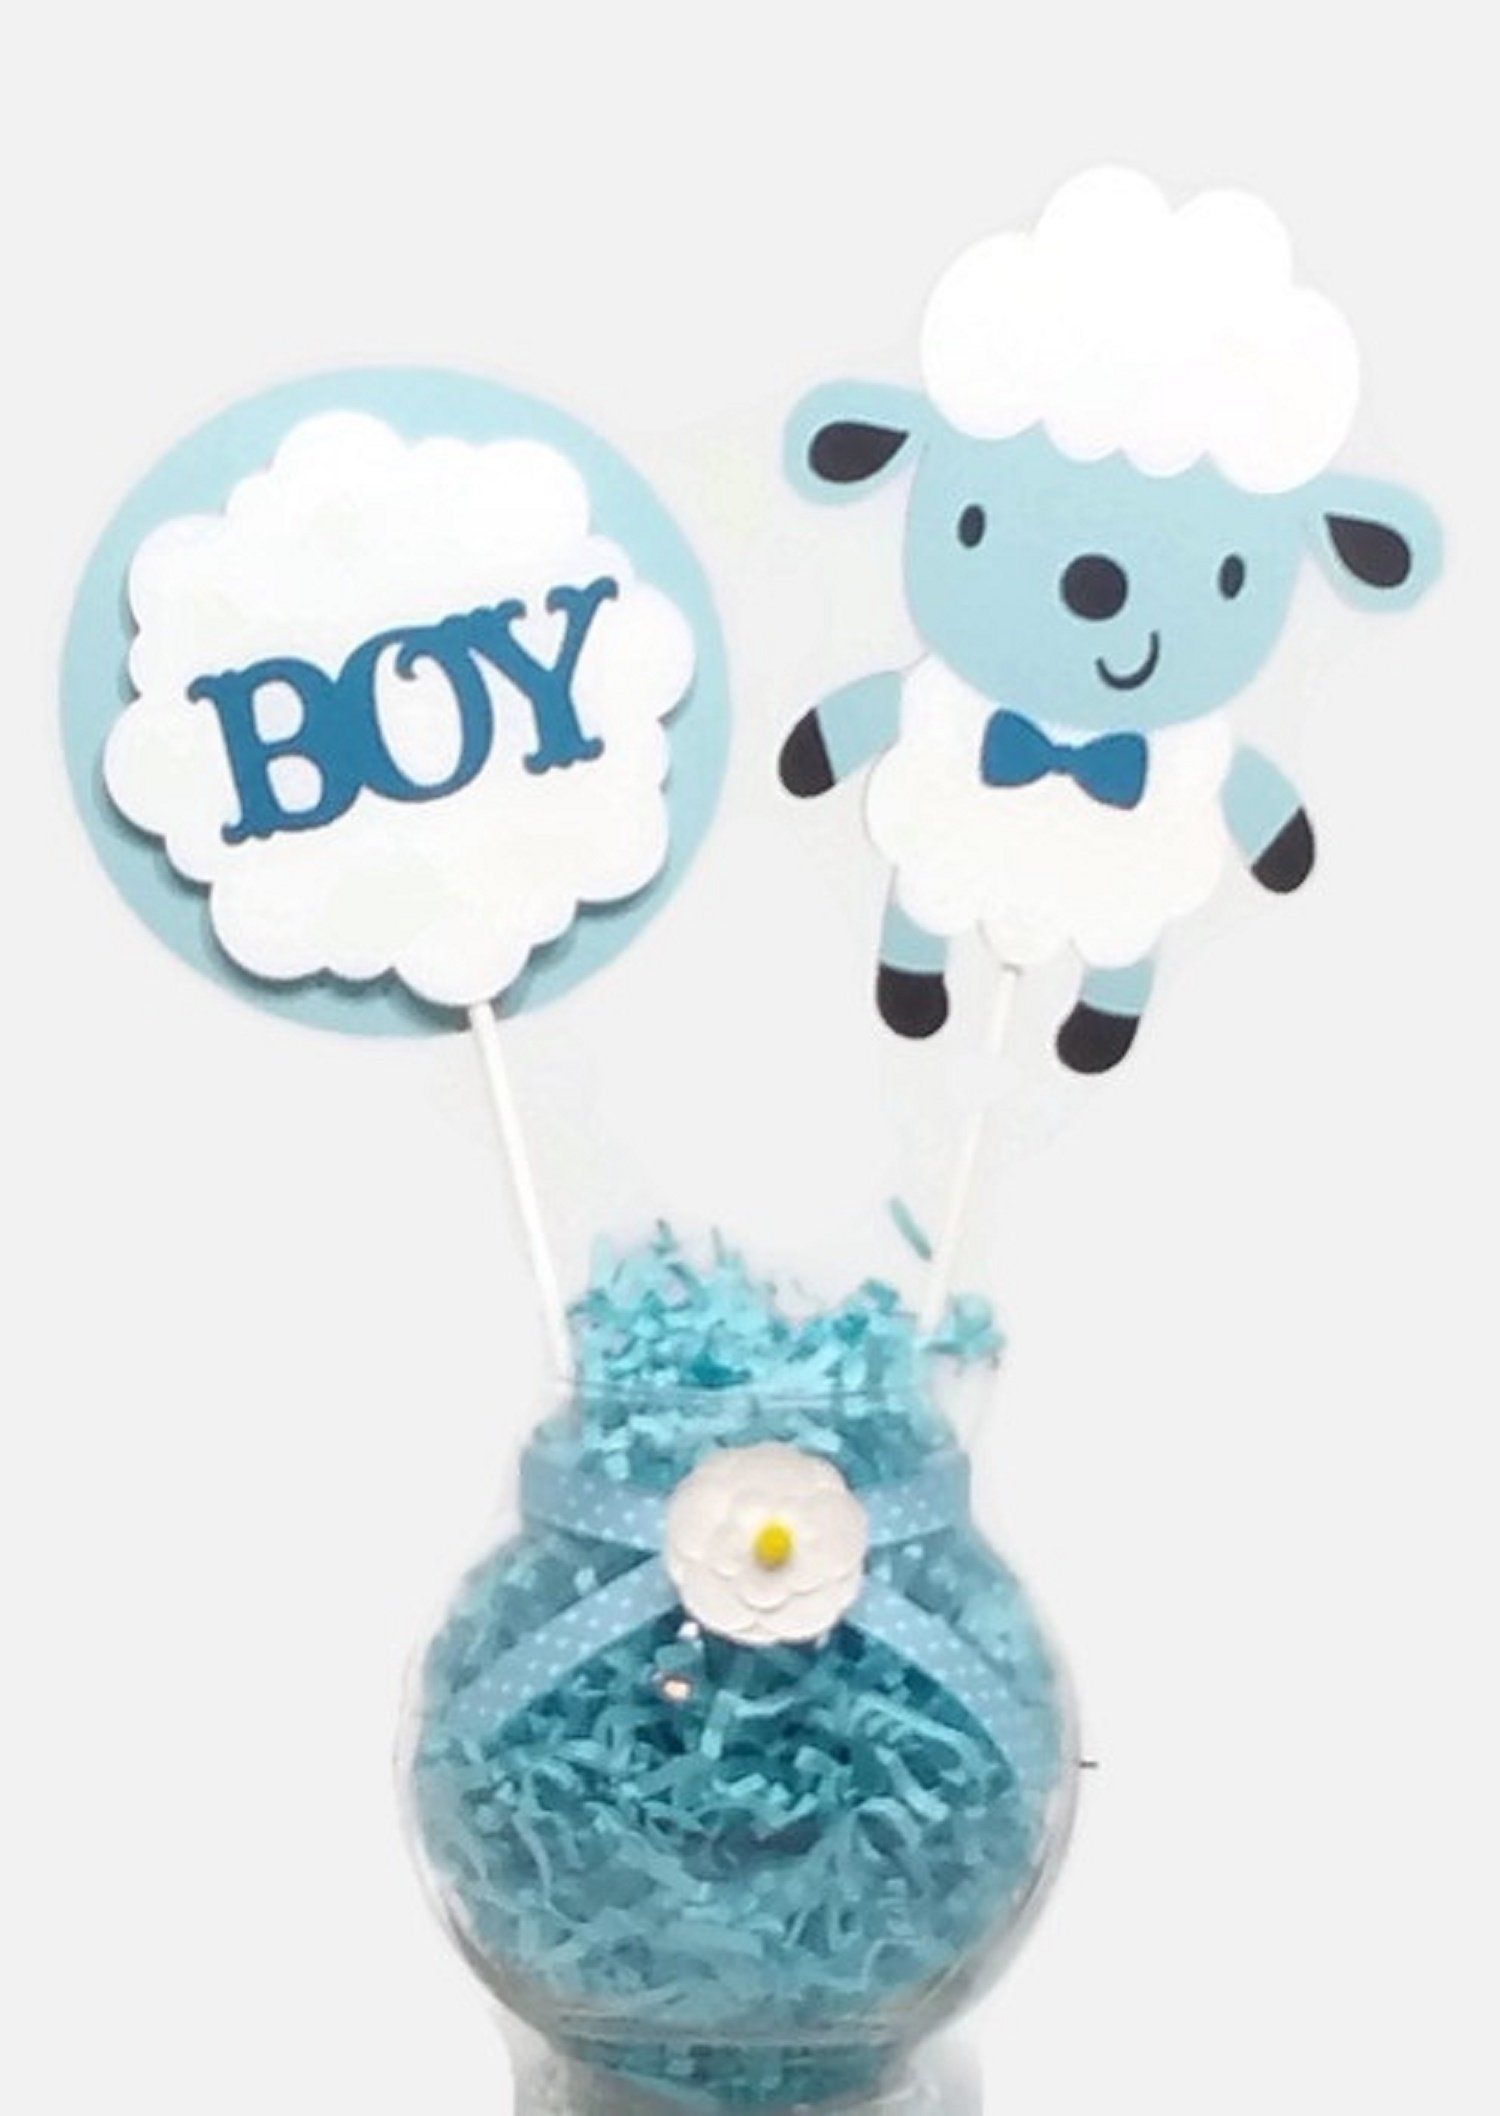 Baby Boy Sheep Lamb Cake Toppers Centerpiece Sticks Baby Shower Decorations Neutral Baby Shower Centerpieces Baby Shower